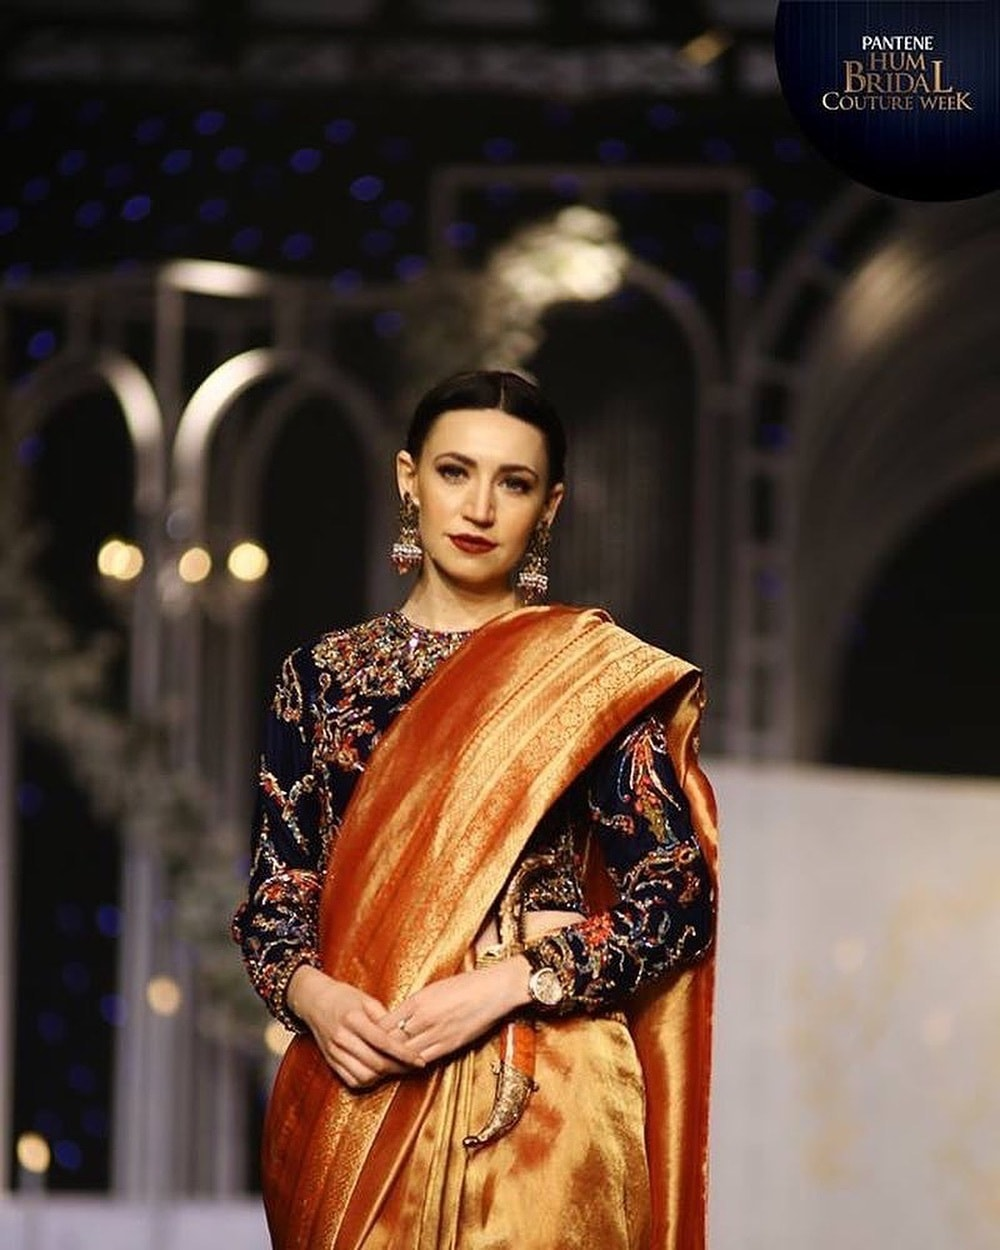 Nilofer Shahid's Badshah Begum collection debuted on the BCW'18 ramp.